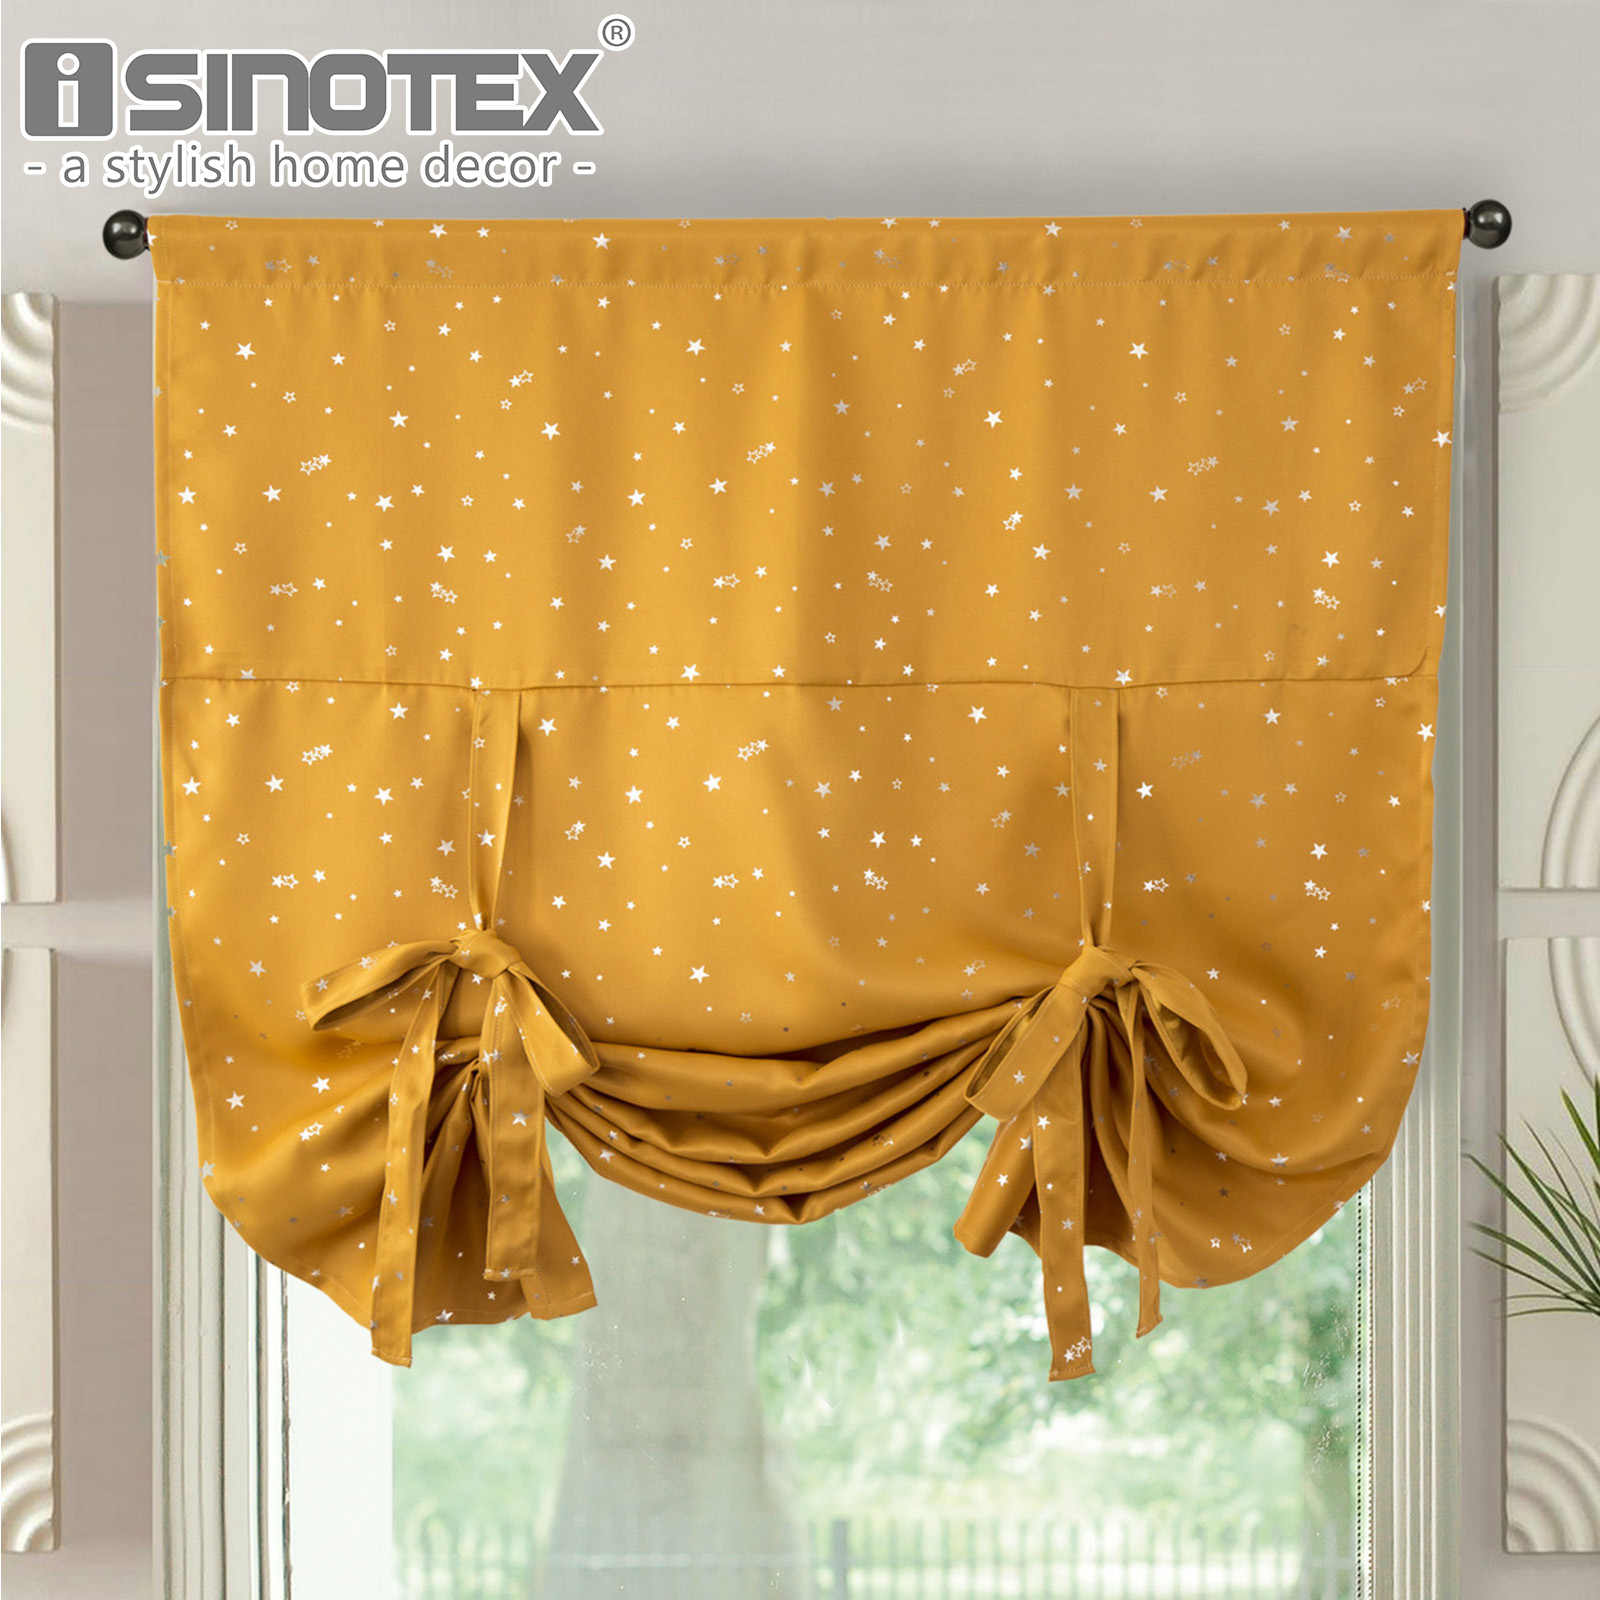 Blackout Roman Curtain Brown Tie Up Shade Silver Star 45*63'' Window Valance Thermal Insulated Rod Pocket Panel Balloon Blind